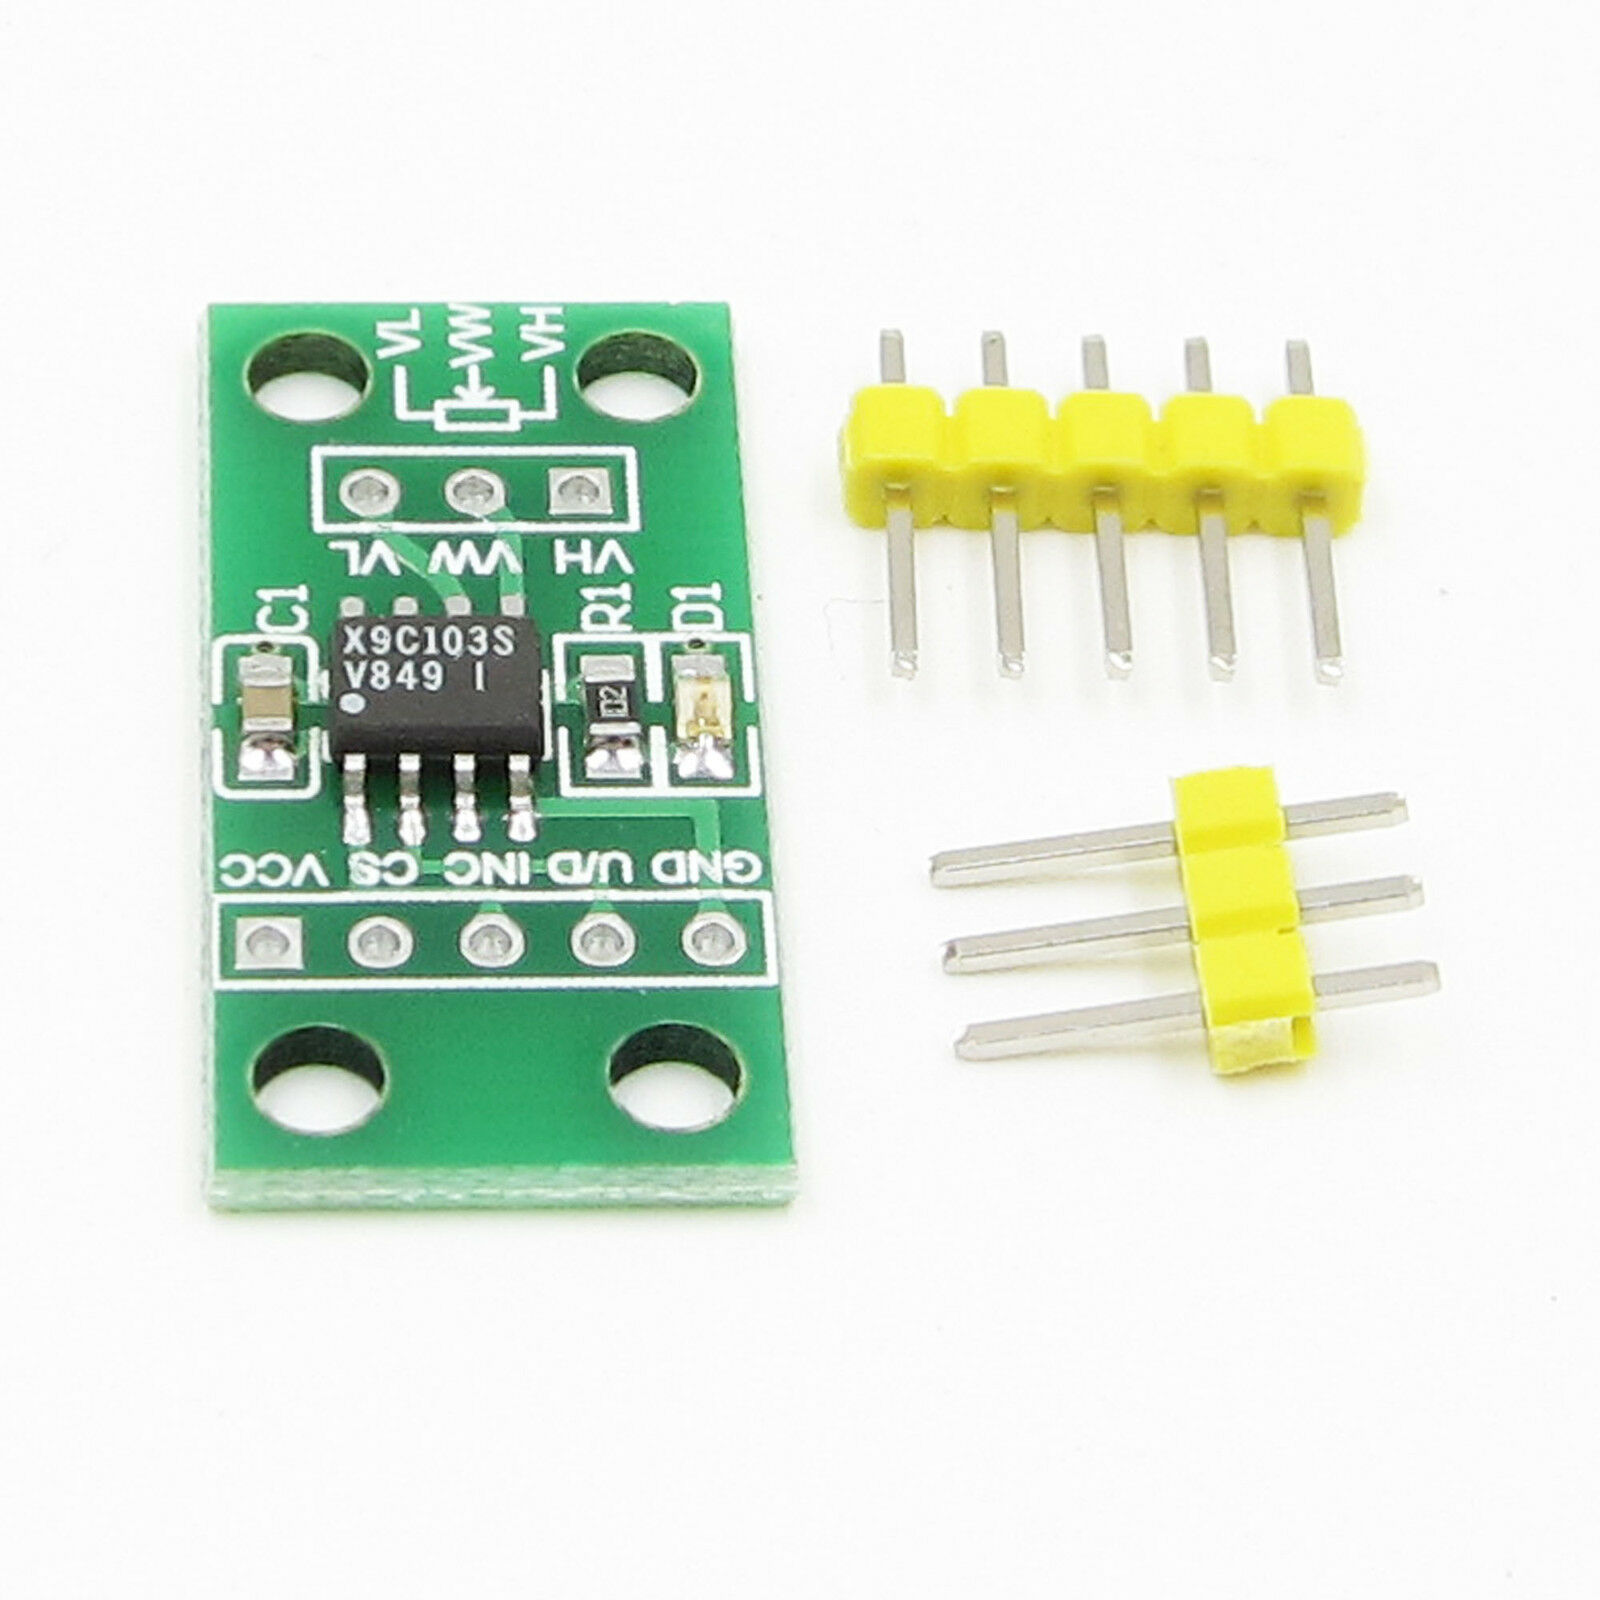 Dc3v 5v X9c103s Digital Potentiometer Board Module For Arduino Antietching Pcb Circuit Ink Marker Pen Diy 1 Of 4 See More